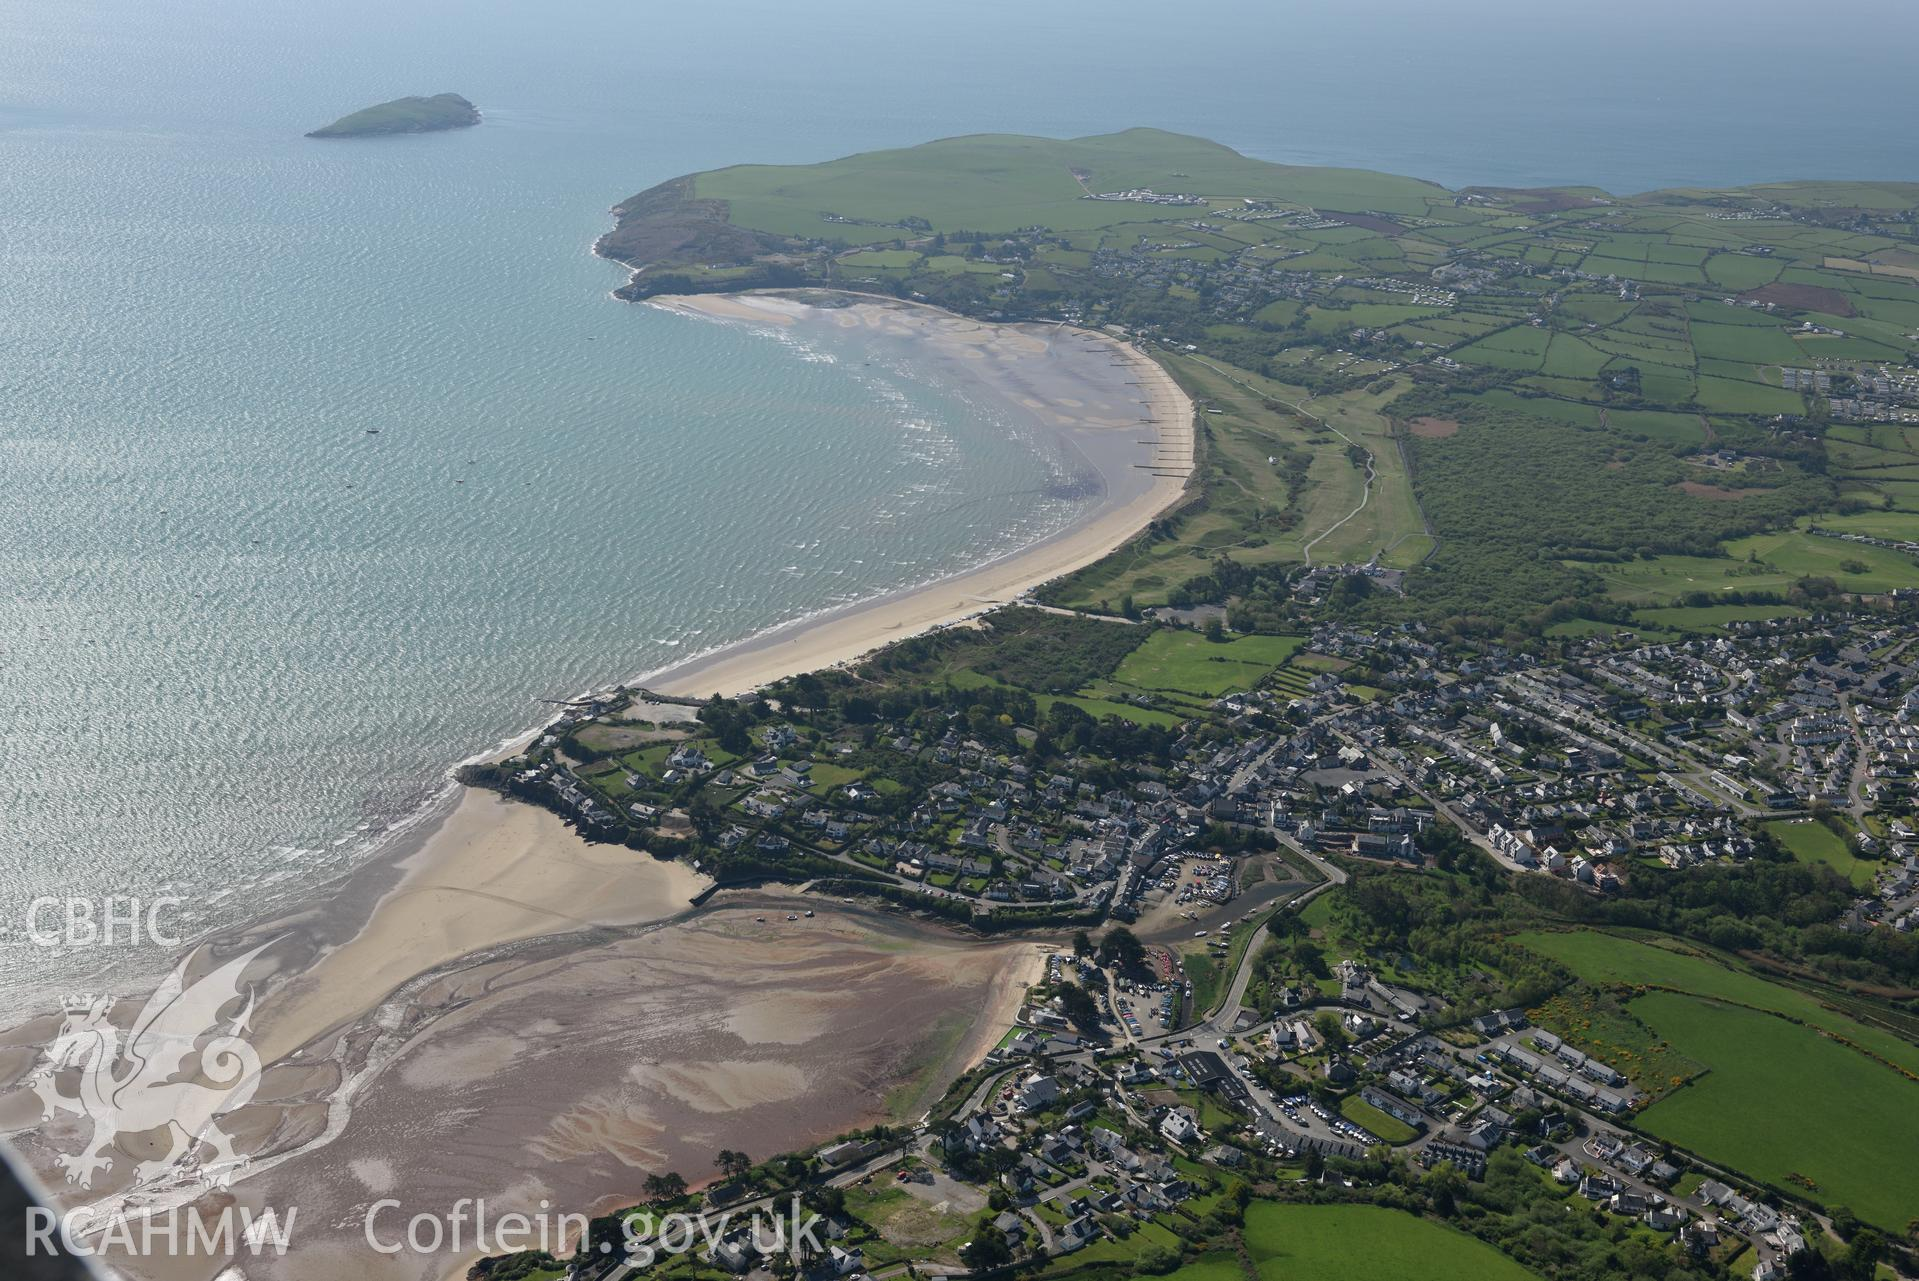 Aerial photography of Abersoch taken on 3rd May 2017.  Baseline aerial reconnaissance survey for the CHERISH Project. ? Crown: CHERISH PROJECT 2017. Produced with EU funds through the Ireland Wales Co-operation Programme 2014-2020. All material made free